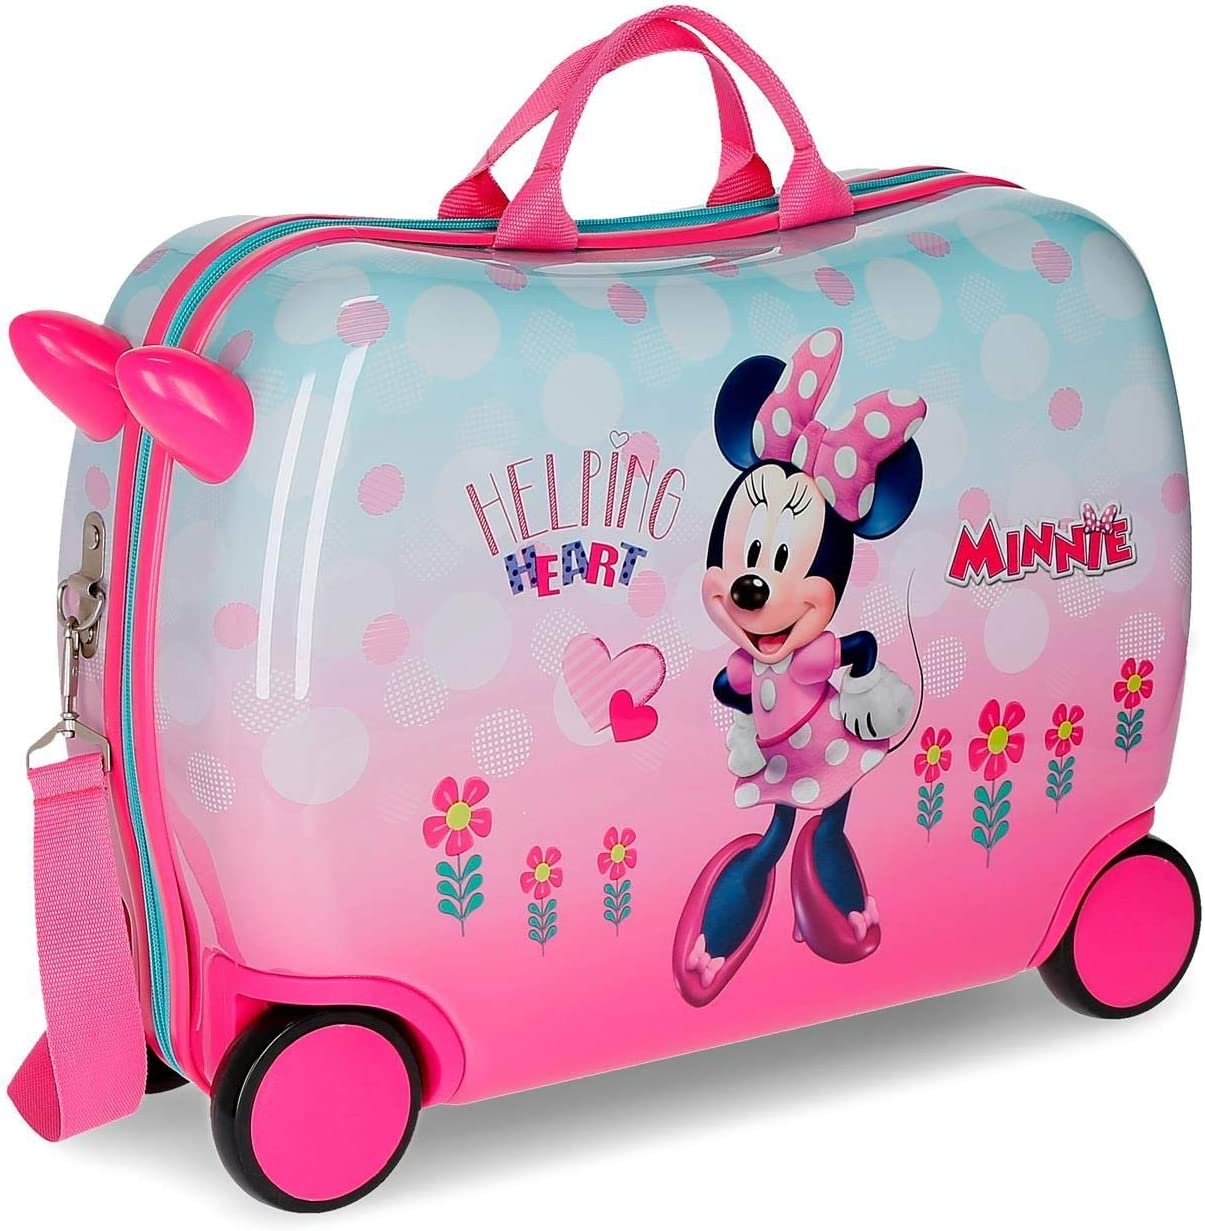 Disney Minnie Heart Kindermode Rosa